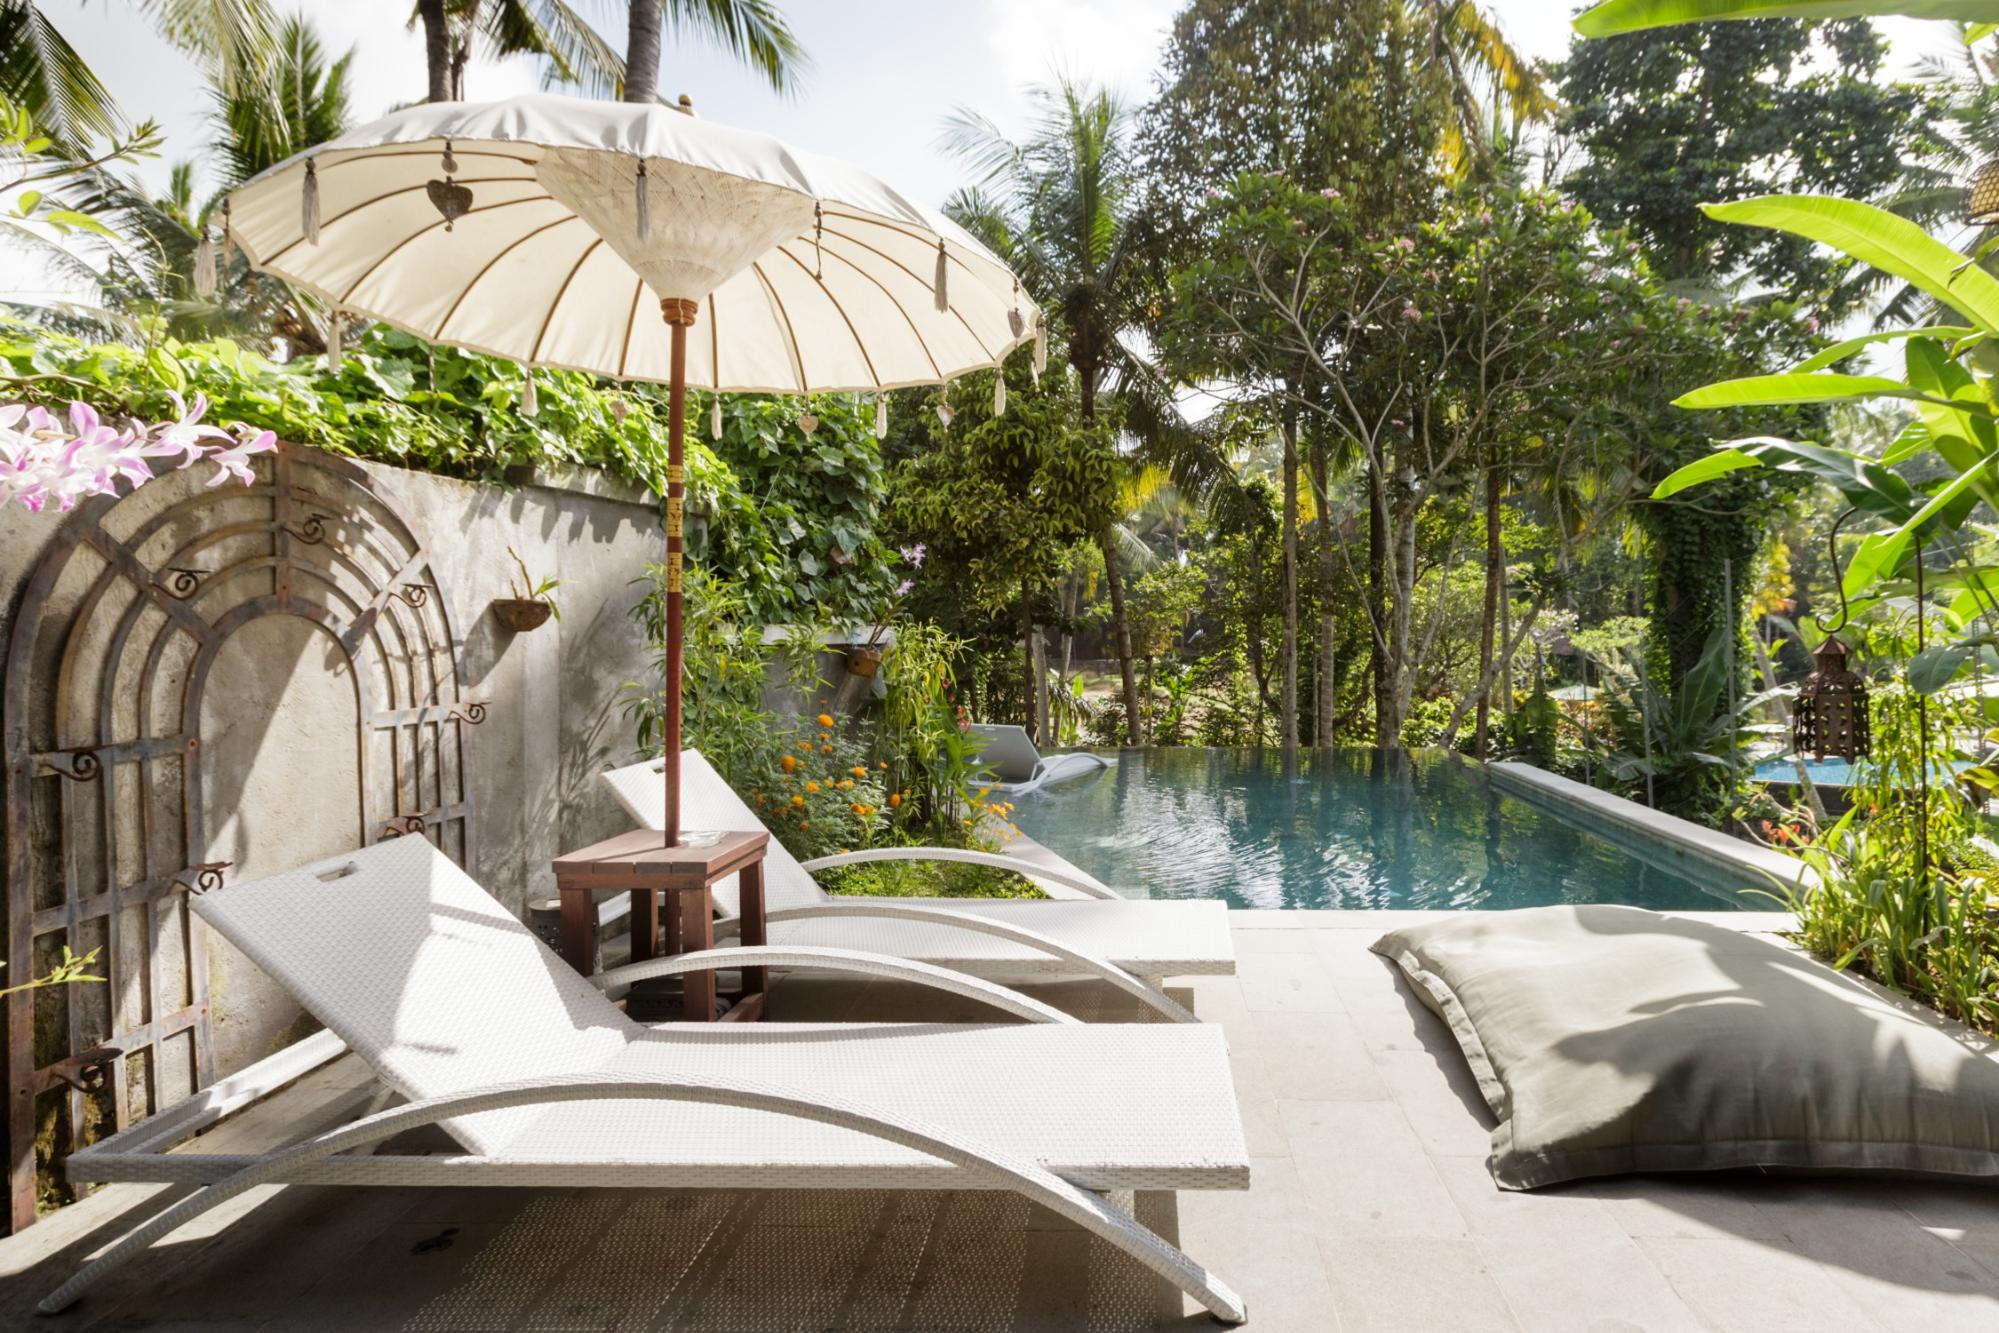 Top 10 Airbnbs in Ubud for Your Next Balinese Adventure